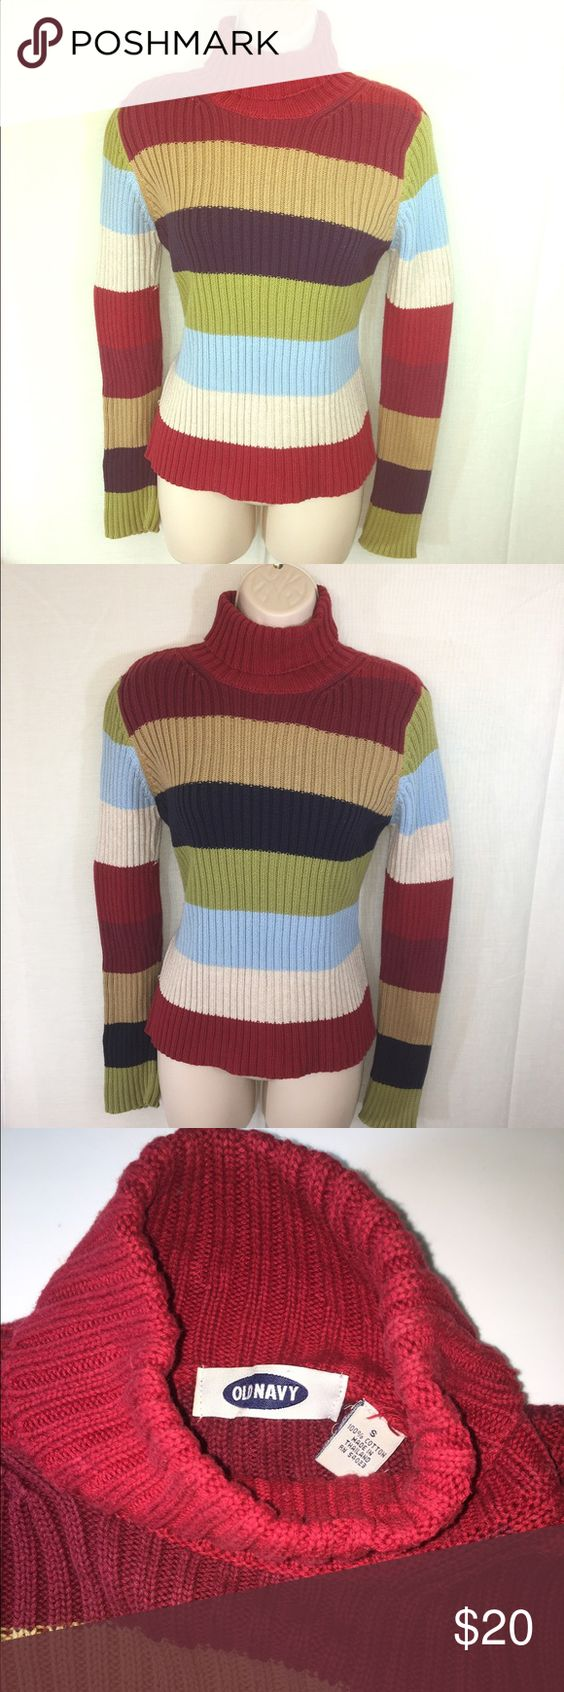 Old Navy Multicolored Sweater-S | Abs, Warm and Old navy